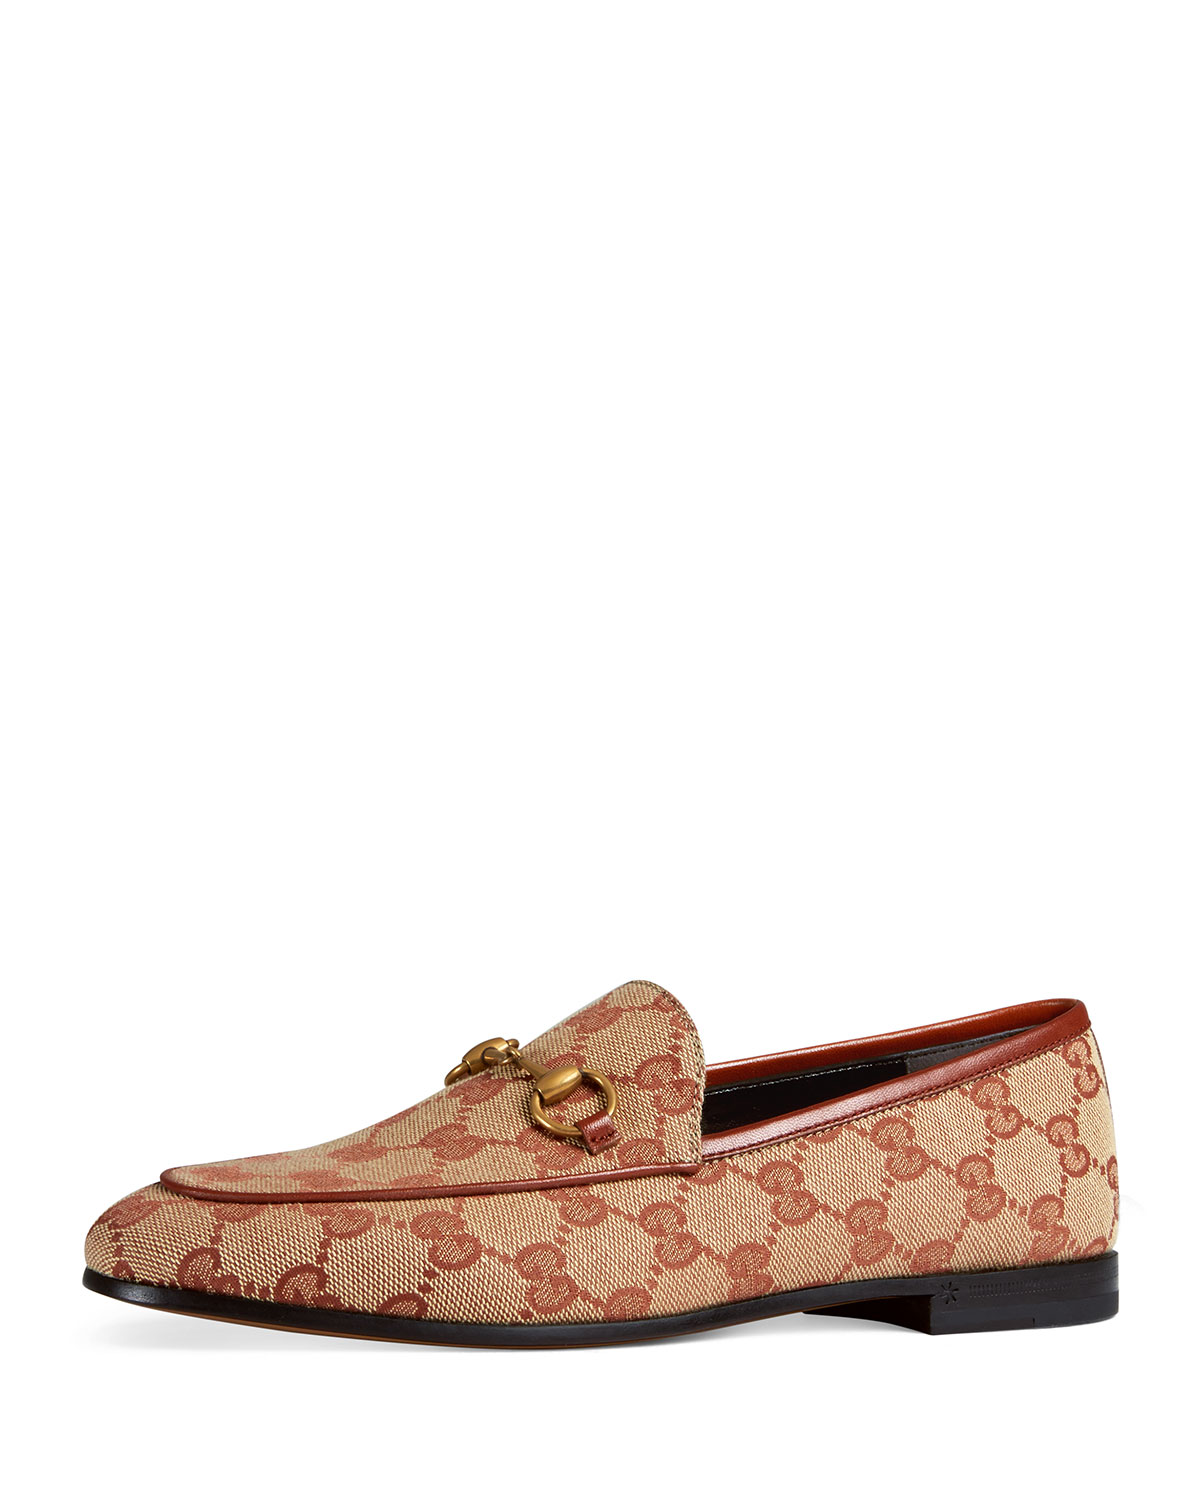 Jordaan Gg Canvas Loafer, Brick Red/Beige Original Gg Canvas